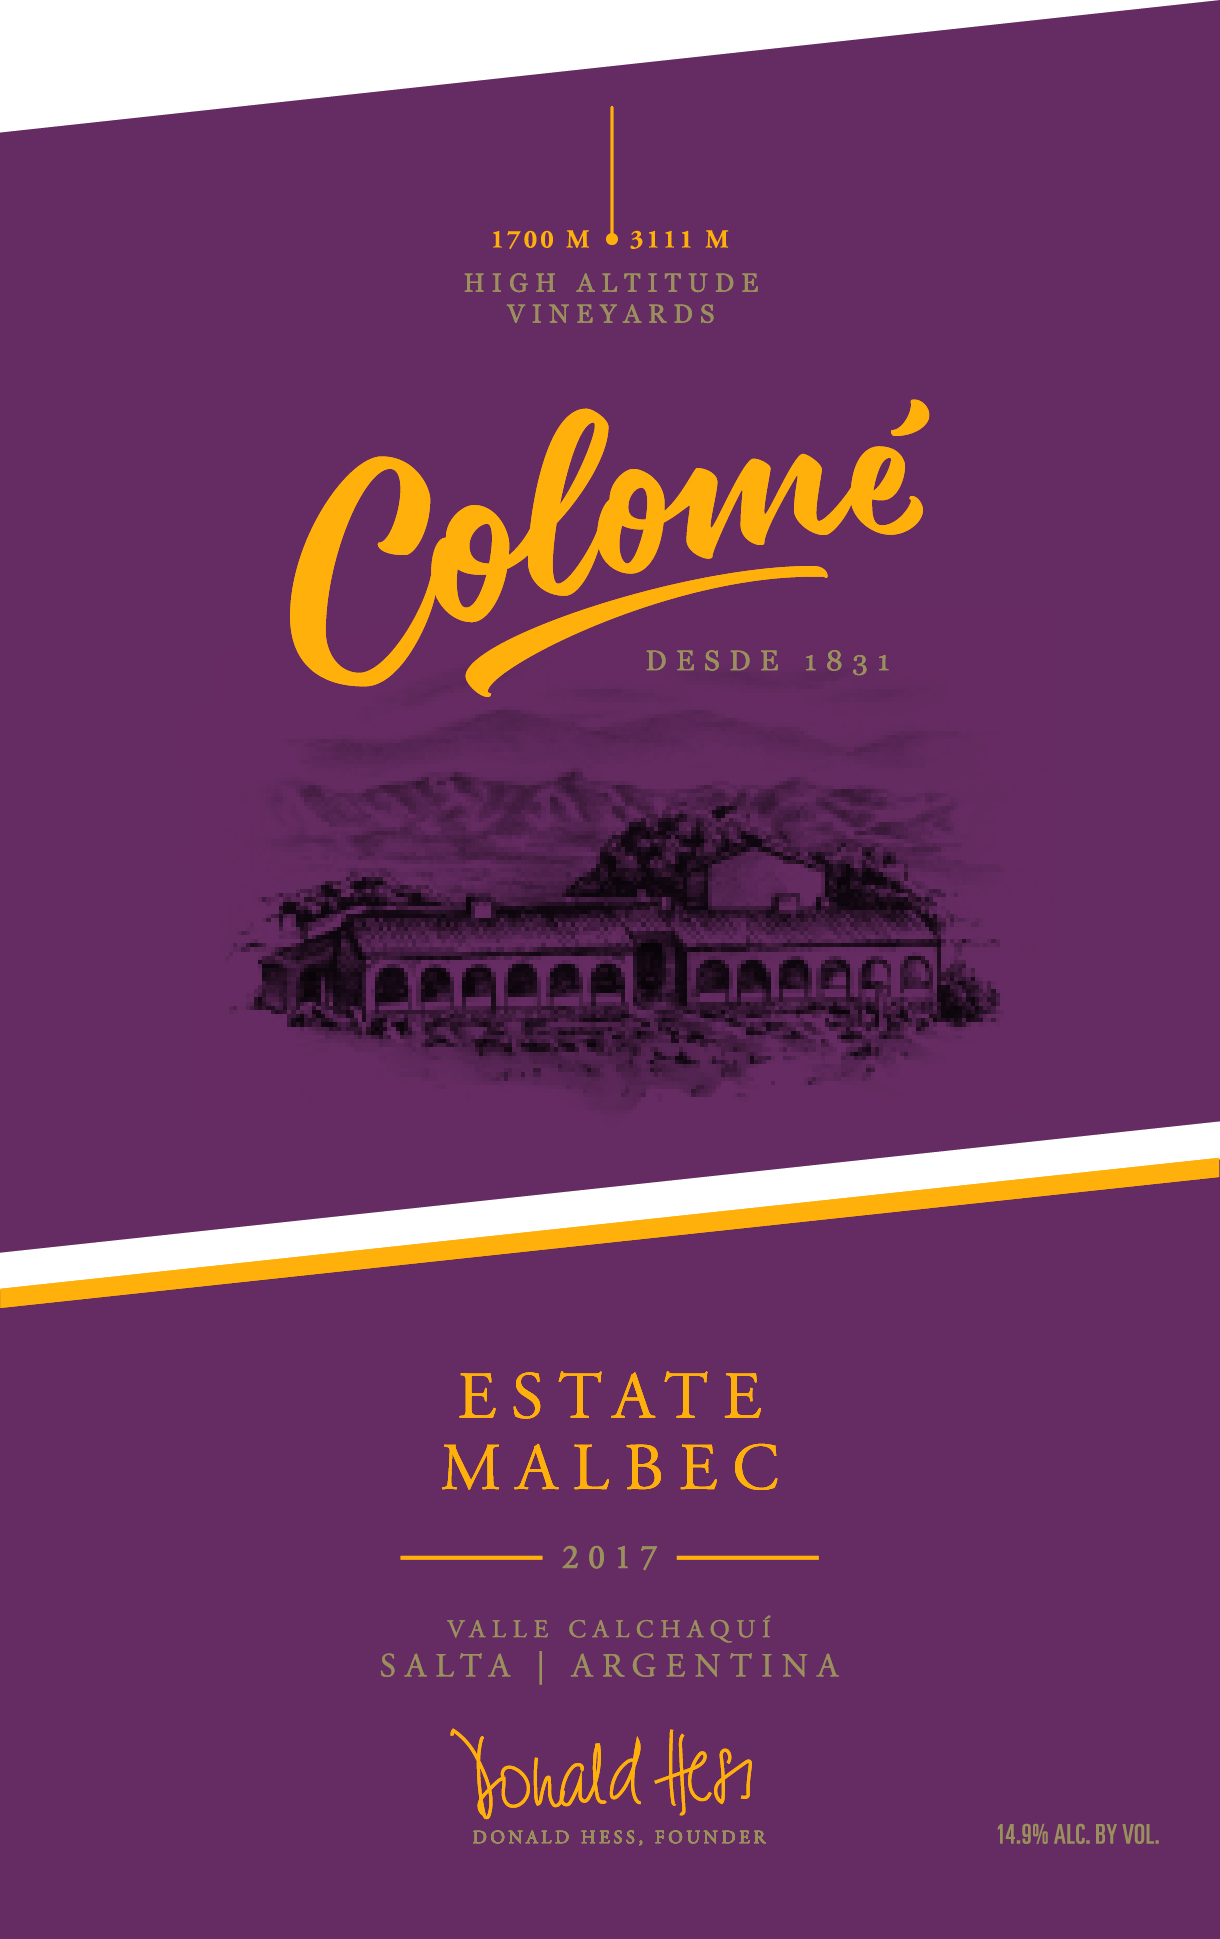 Bodega Colome Malbec Estate High Altitude Vineyards